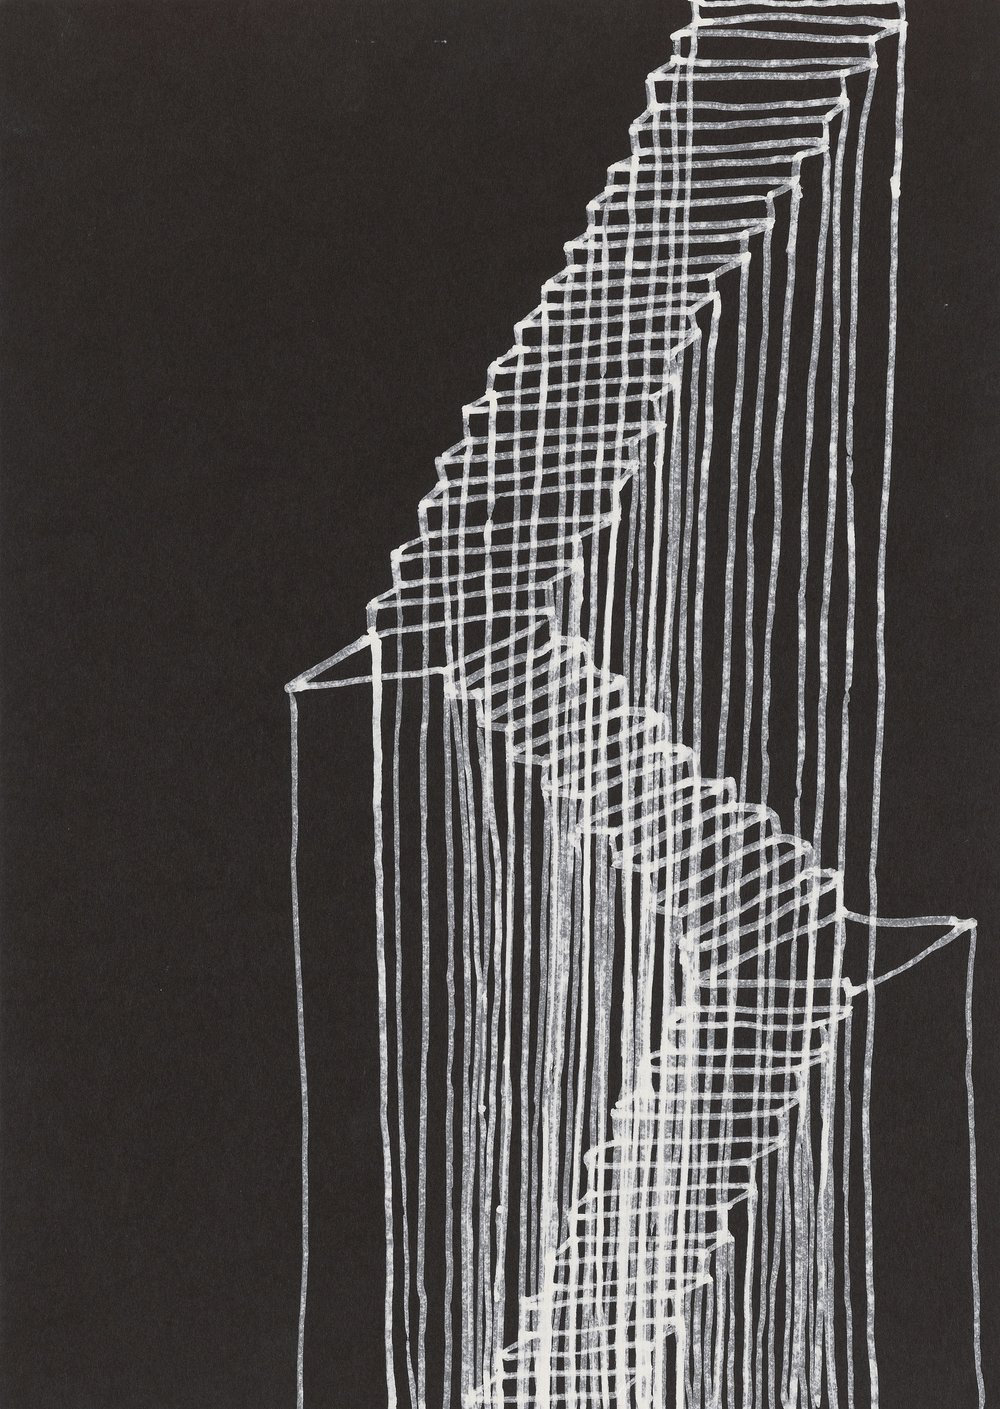 Rachel Whiteread, Stairs, 1995 © Rachel Whiteread | Courtesy of the artist and Gagosian -